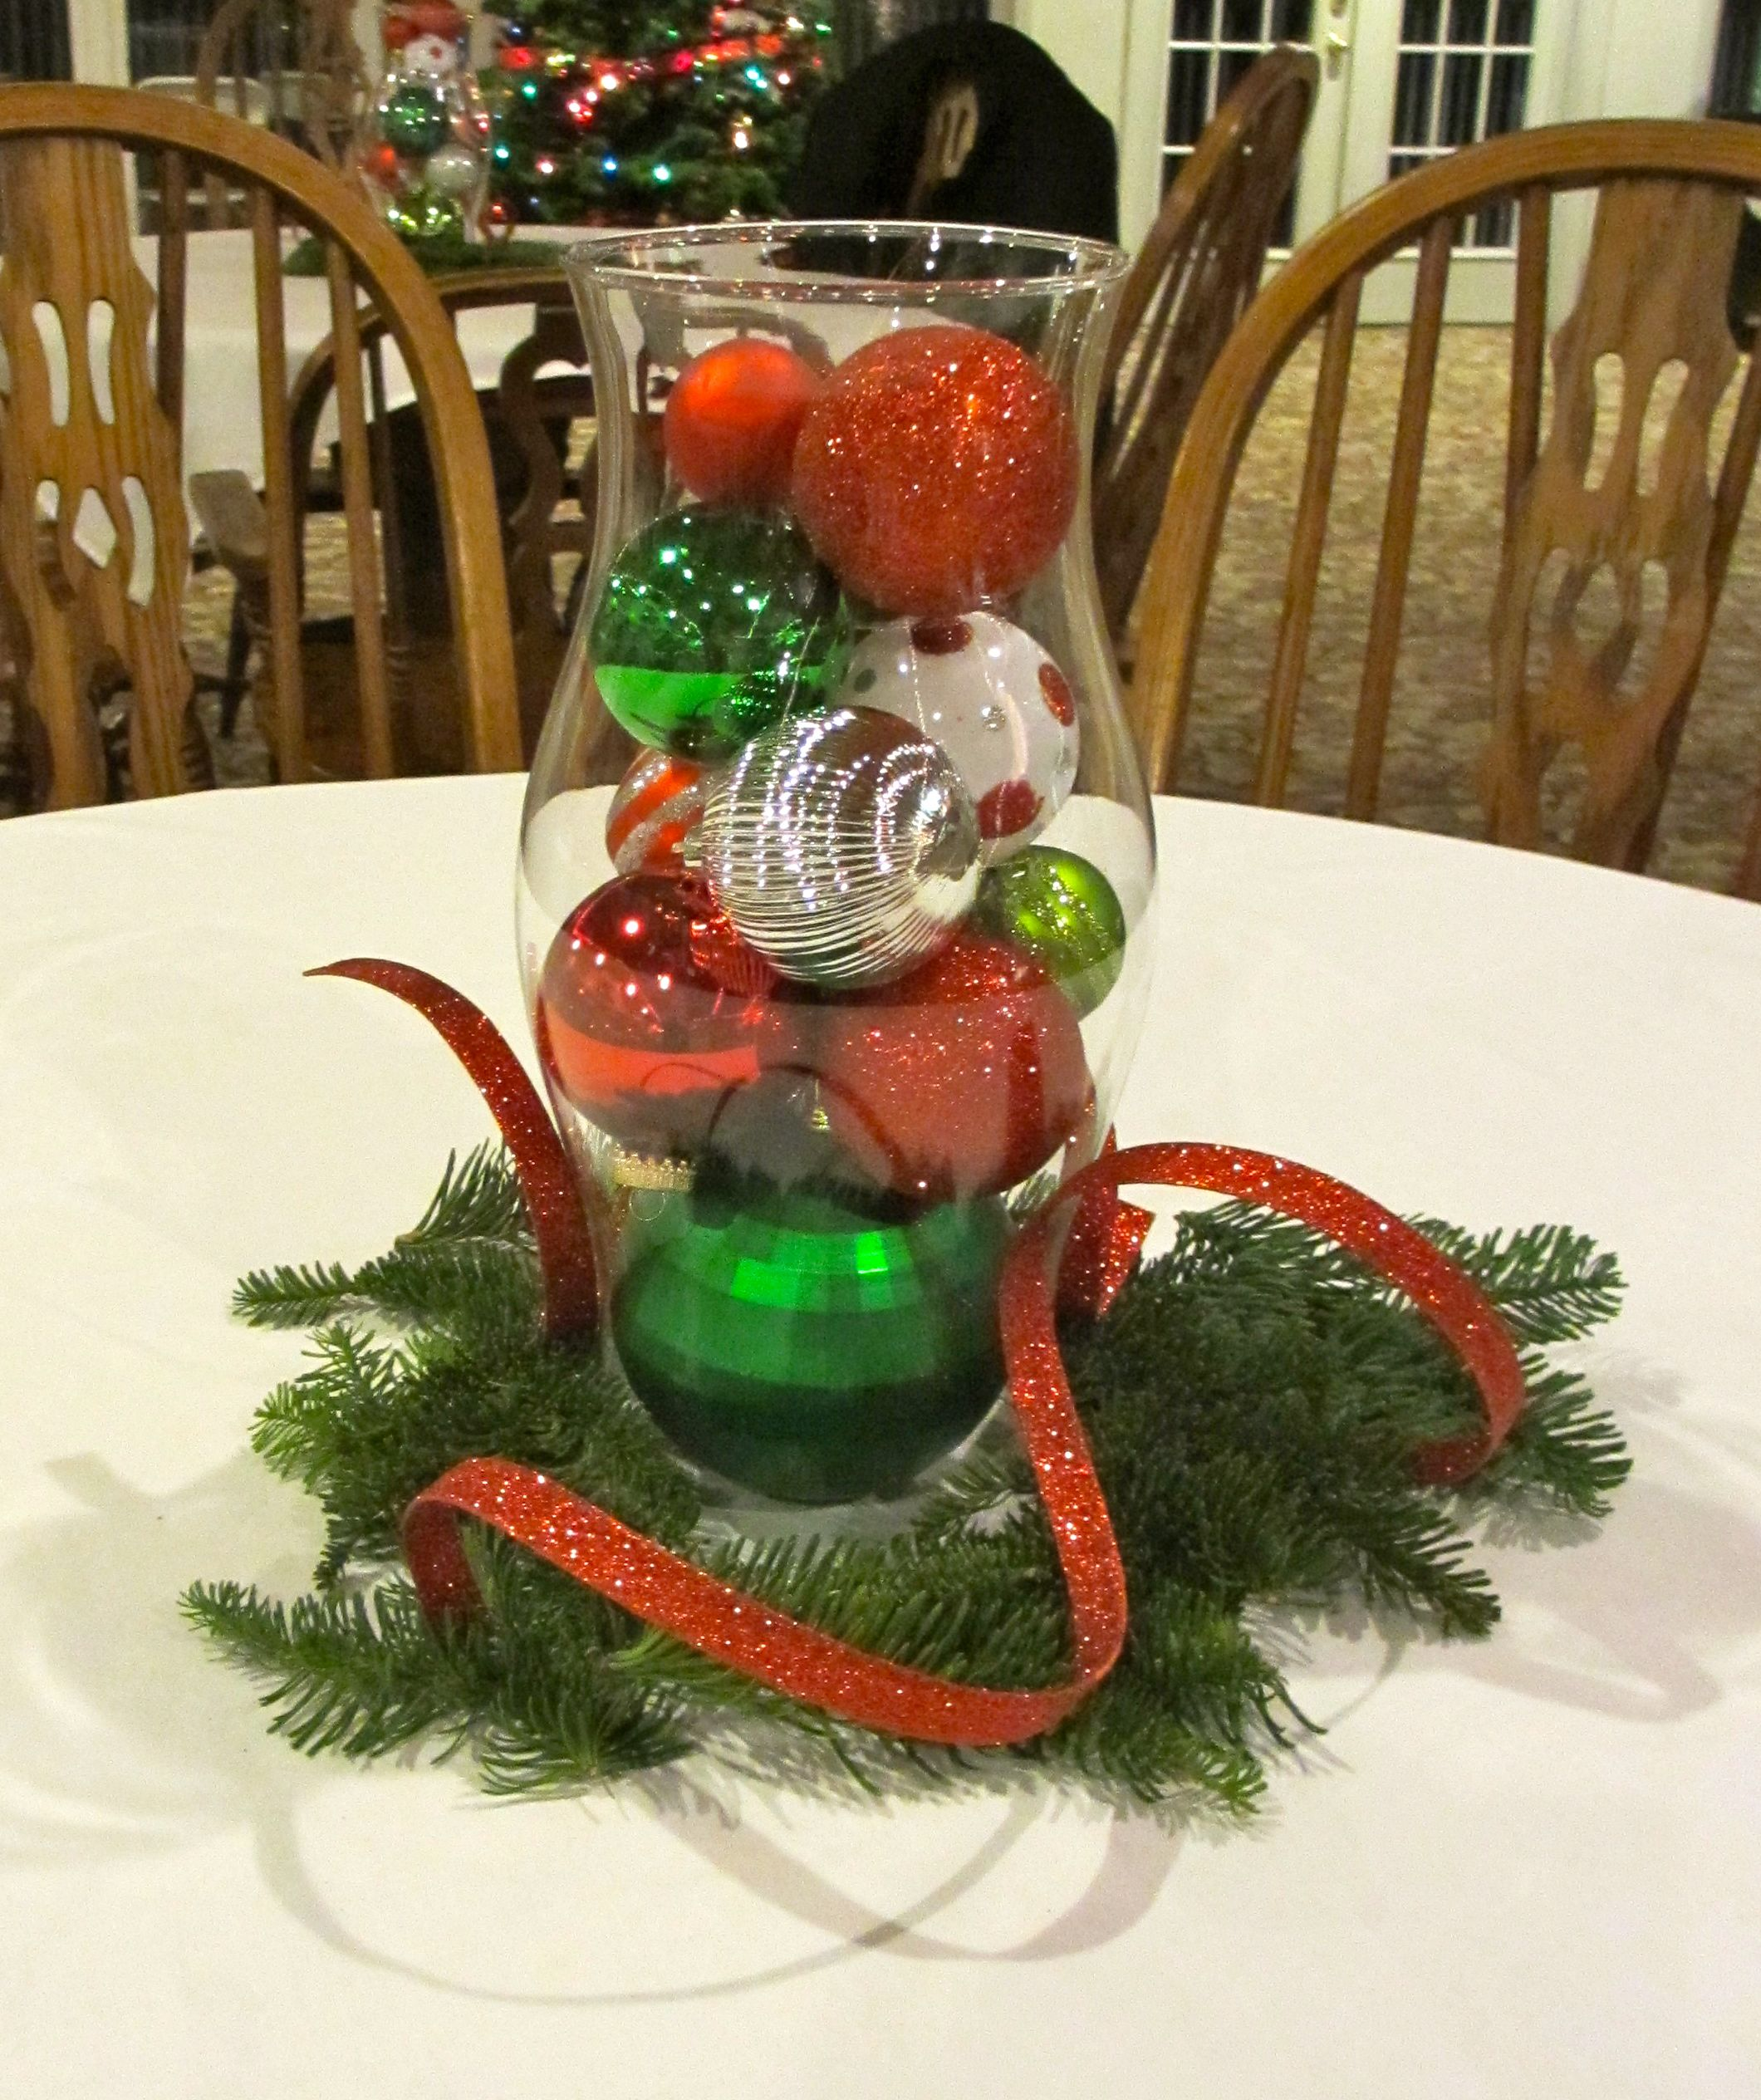 Christmas table centerpiece with fresh greenery